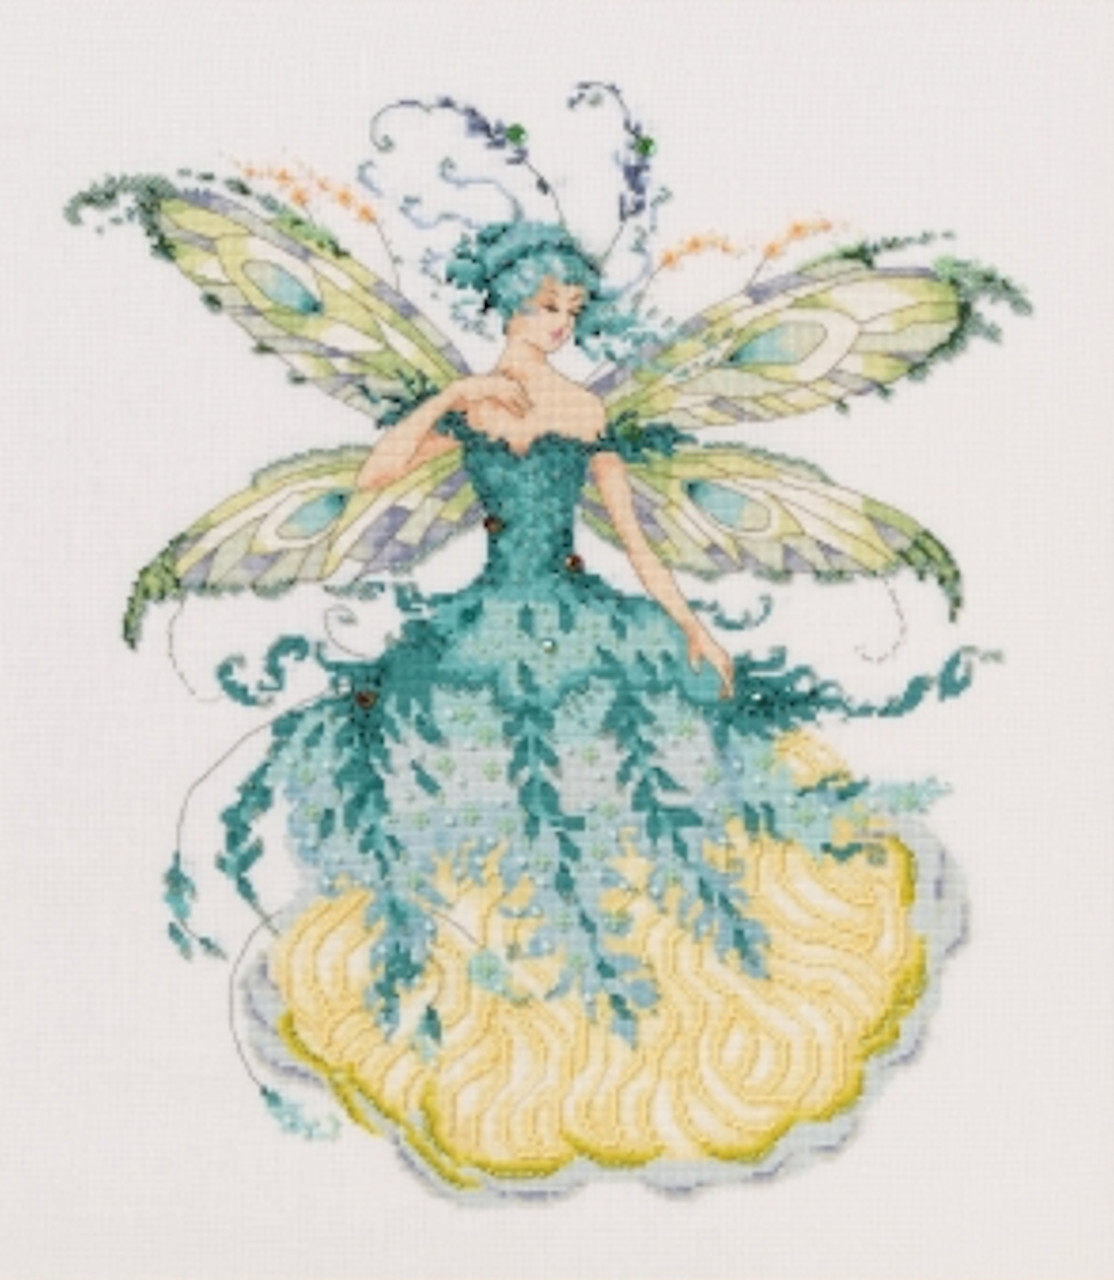 Mirabilia - March Aquamarine Fairy